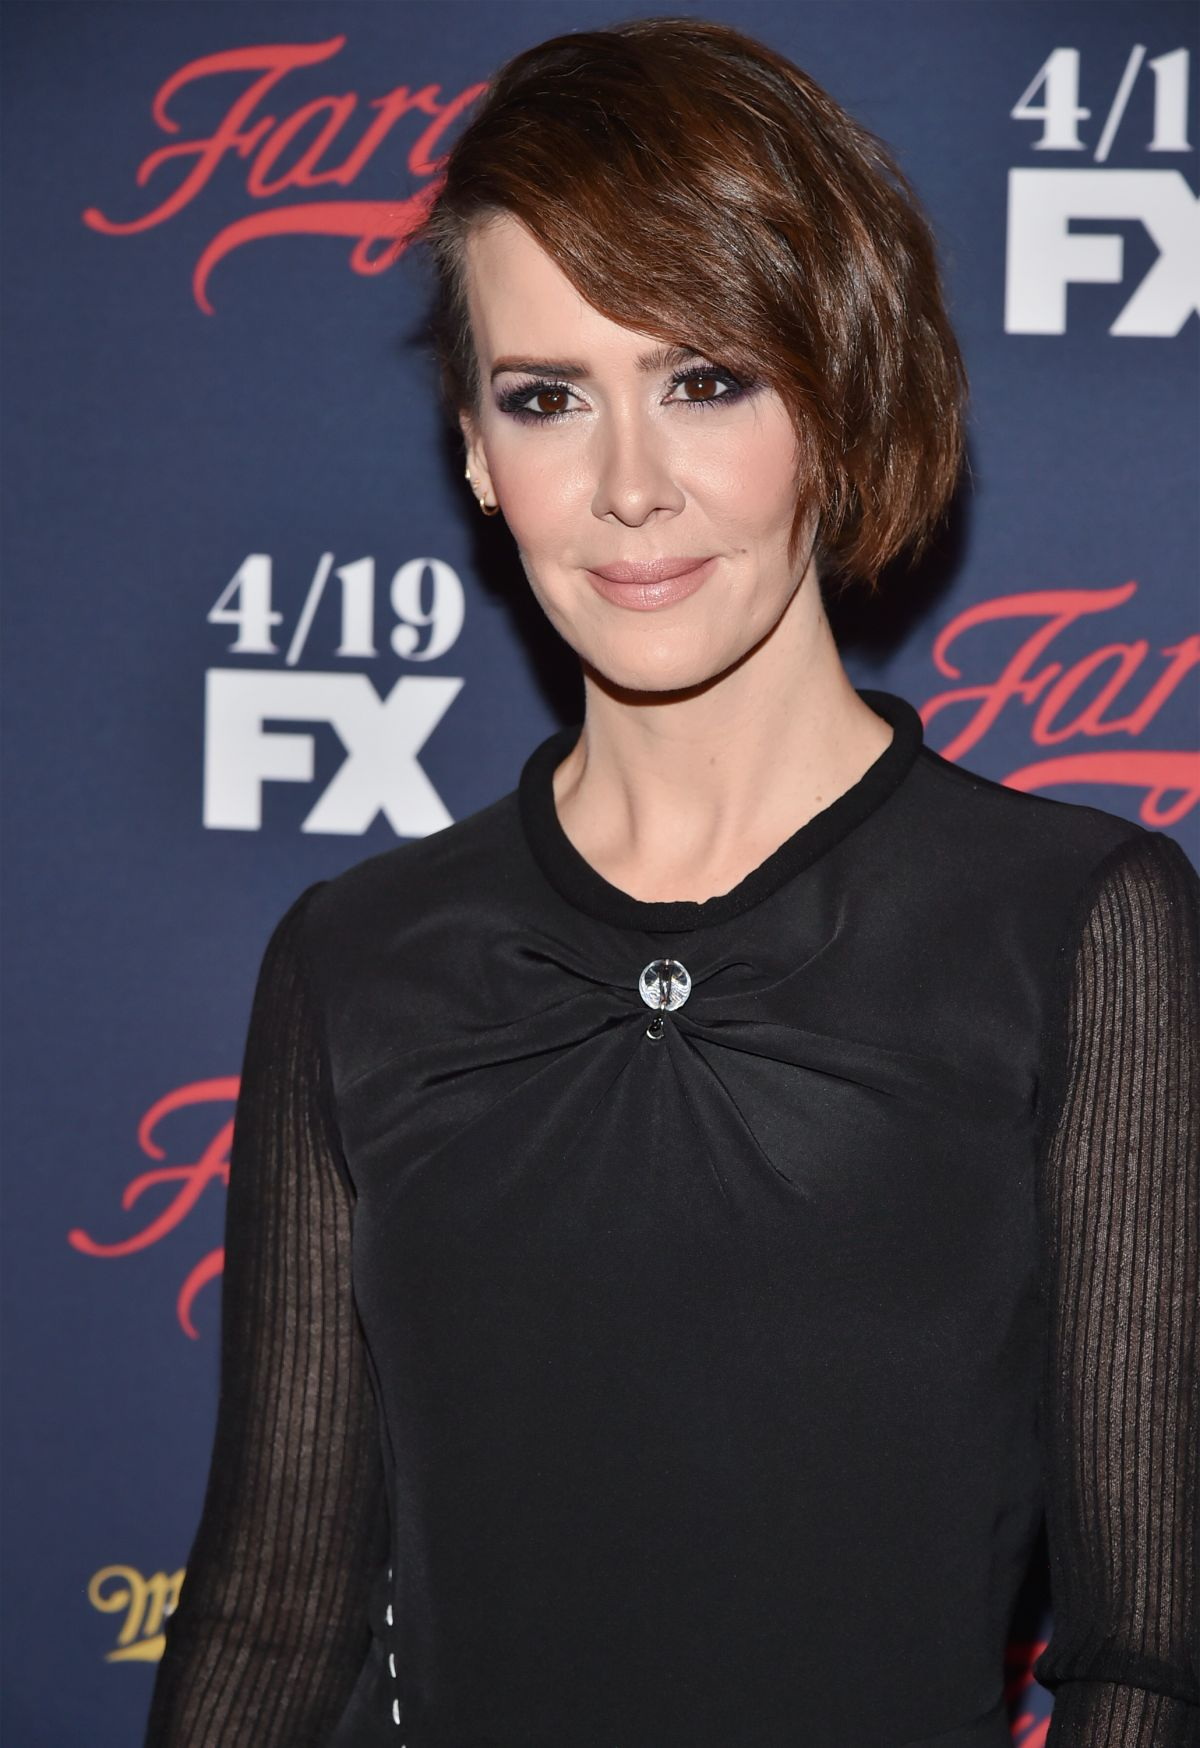 SARAH PAULSON at FX Network 2017 All-star Upfront in New ...